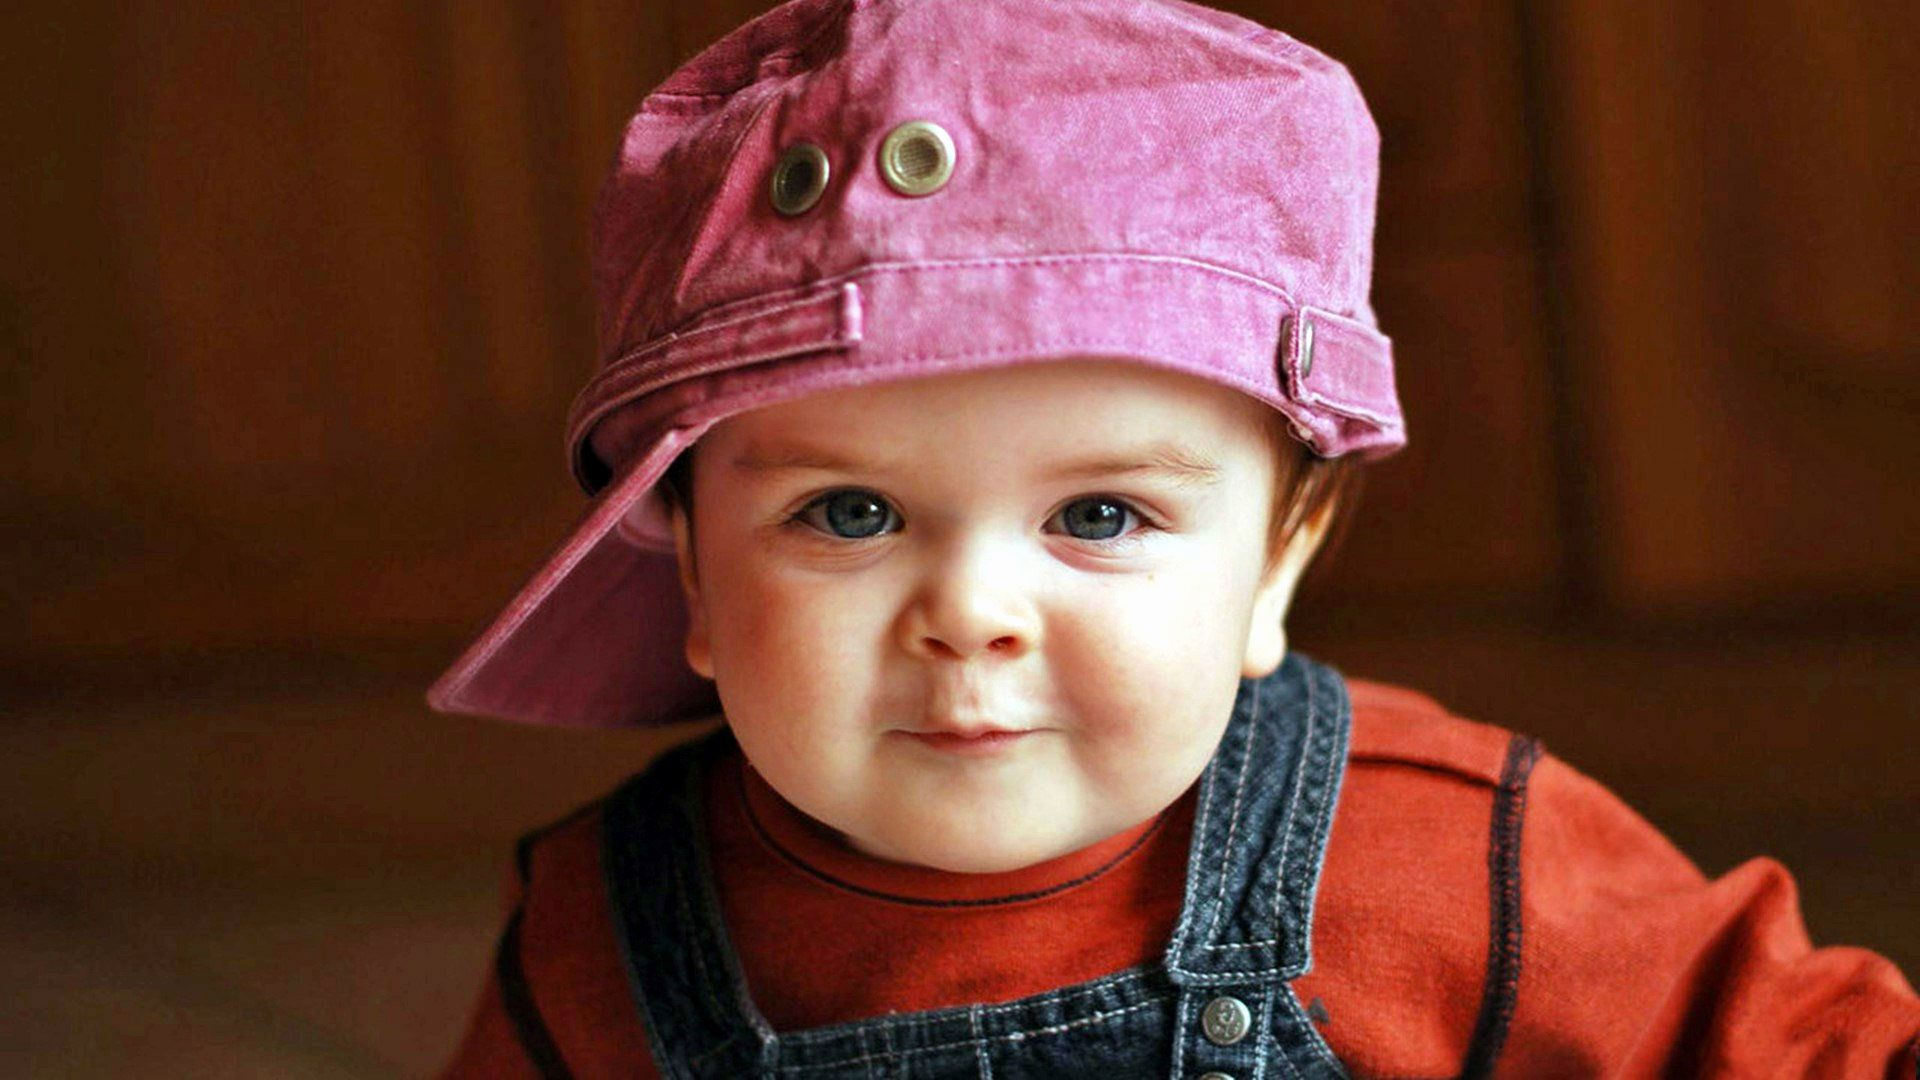 cute_baby_hd_wallpapers